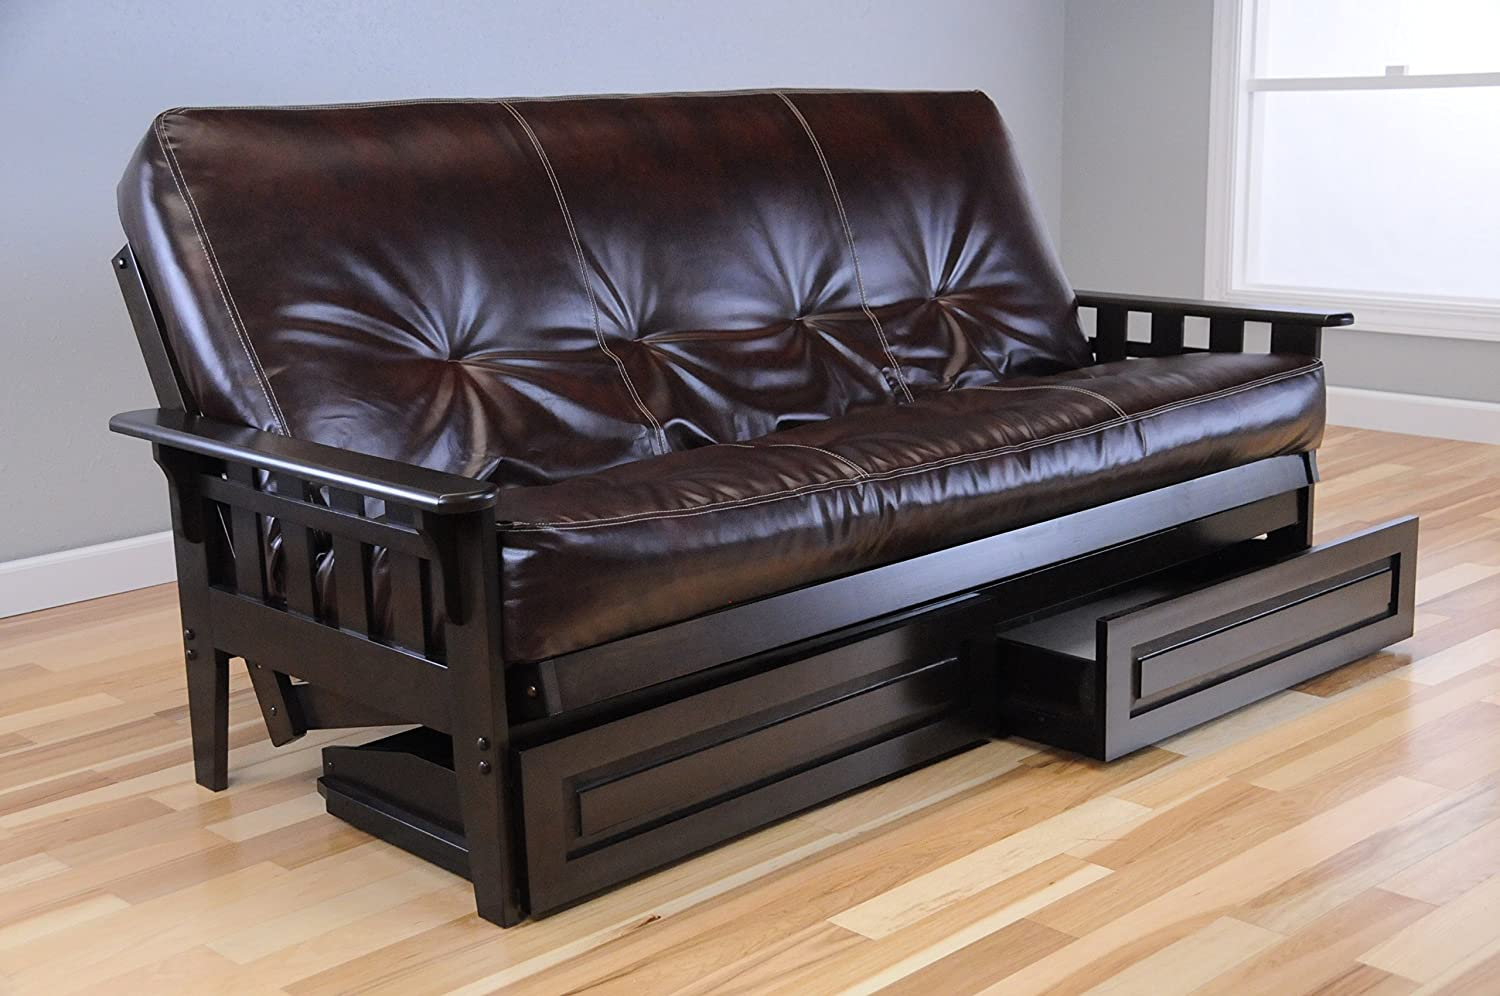 Futon With Storage Drawers Home Decor